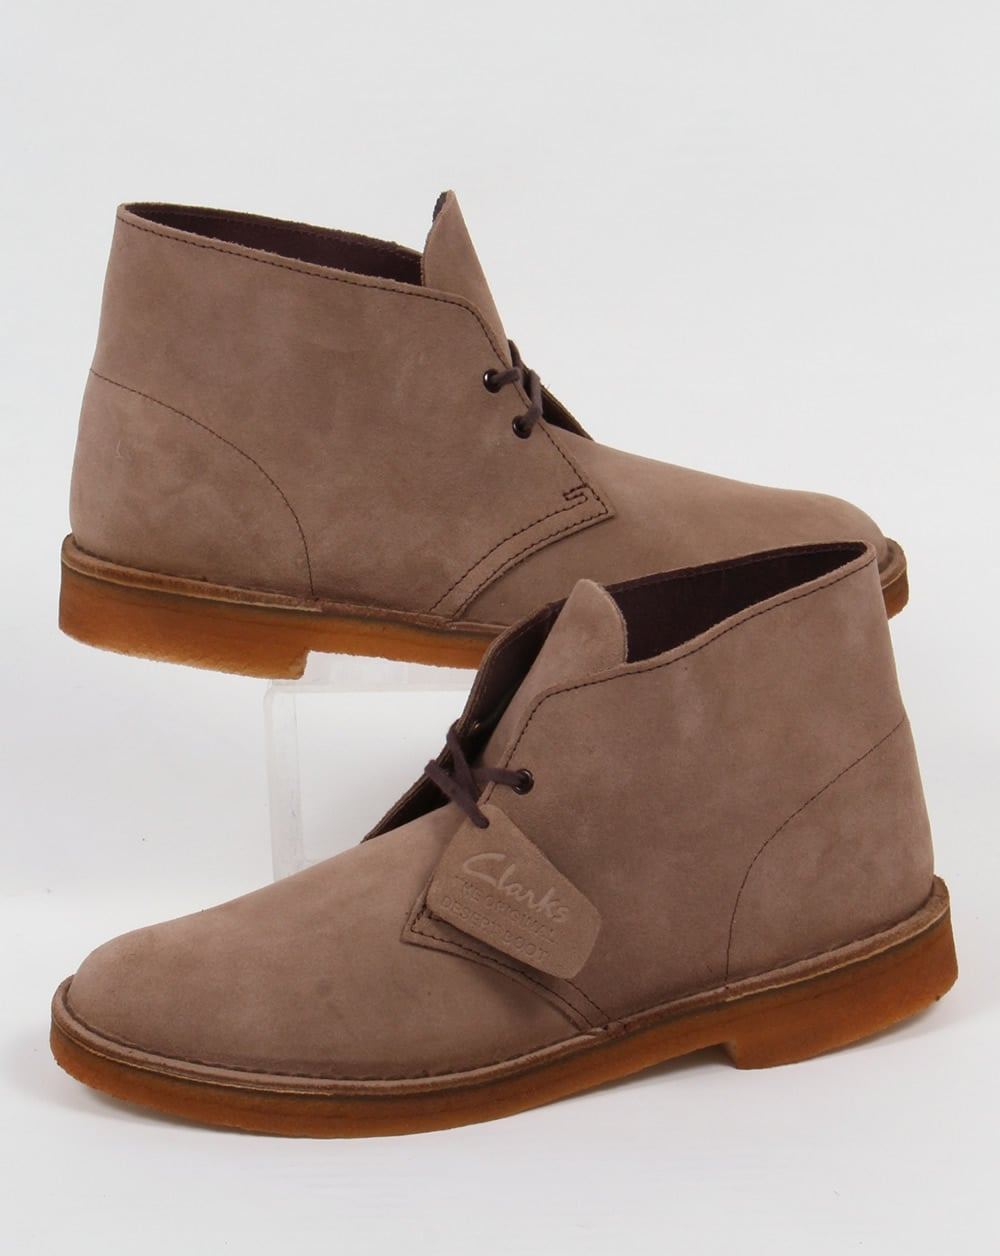 7a2e68abdef Clarks Originals Desert Boot In Suede Wolf Grey